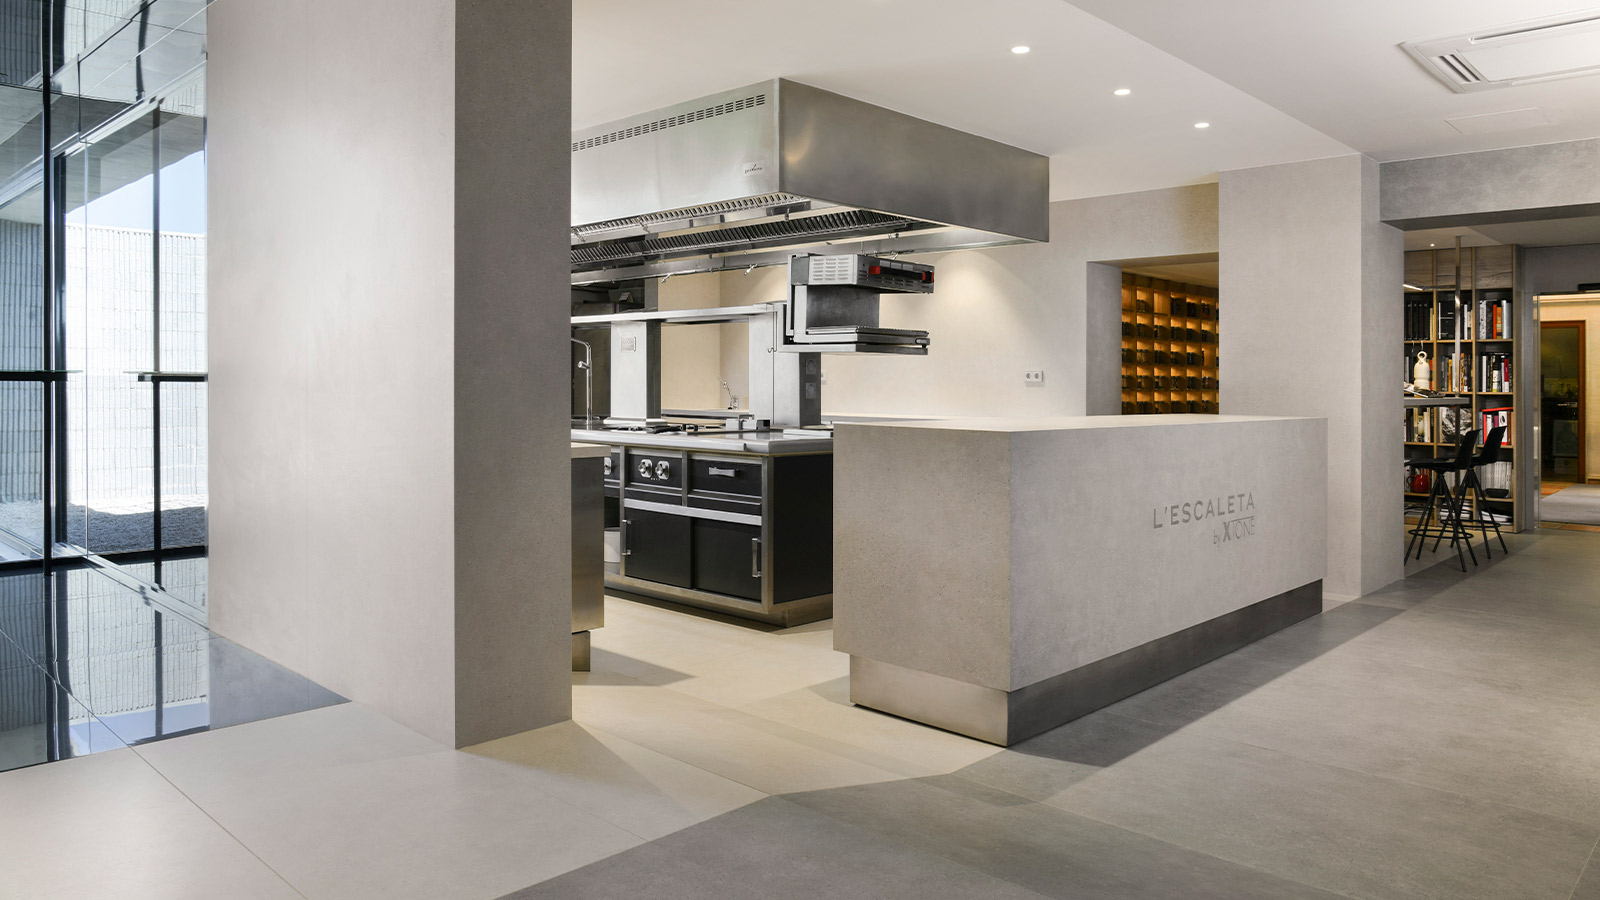 L'Escaleta turns 40 and renews its kitchen with XTONE by PORCELANOSA Group